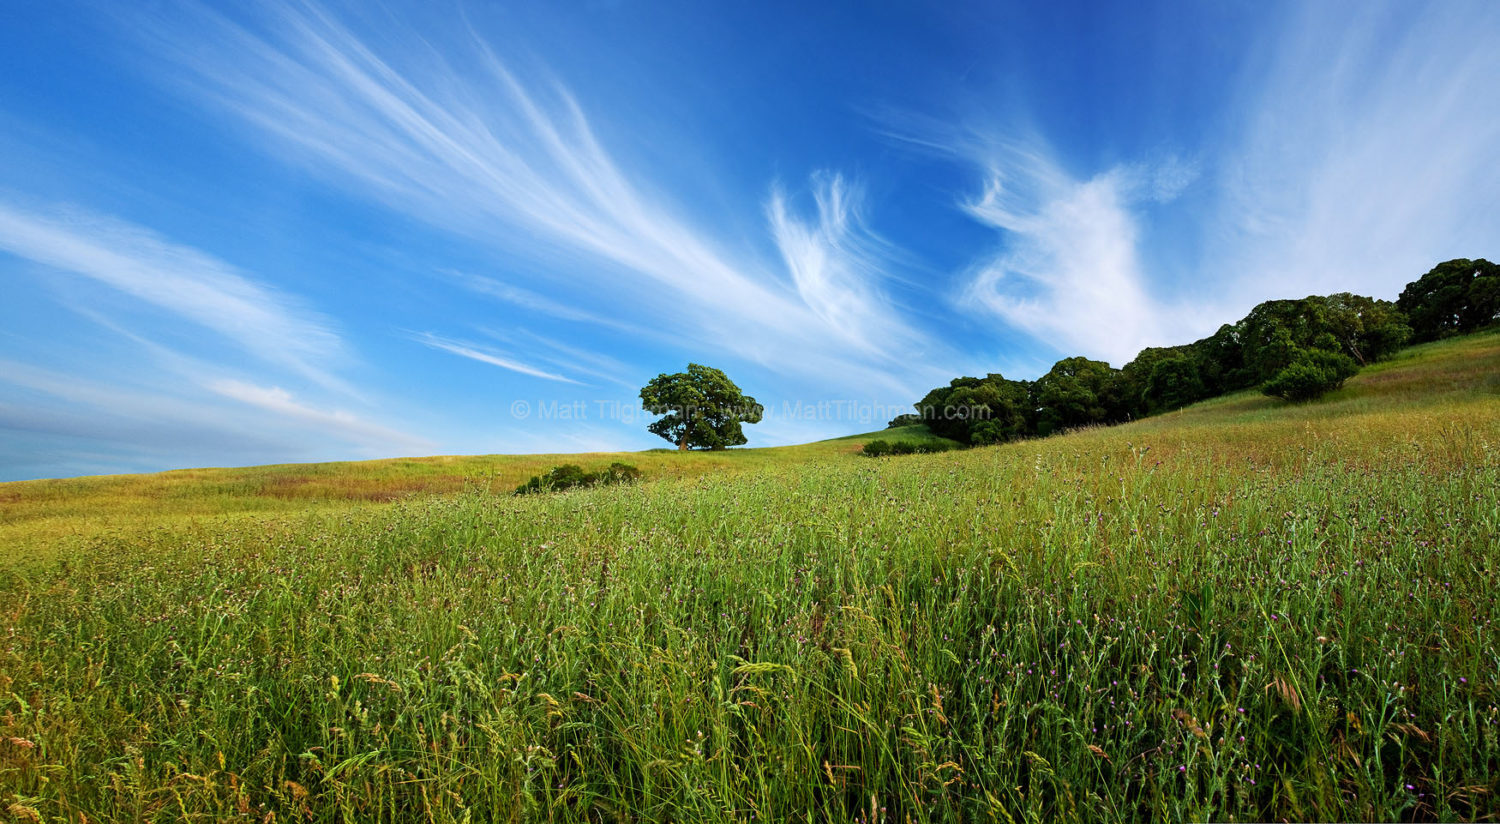 Fine art stock photograph of early summer scene in Calero County Park, California. The wildflowers have faded but the grass remains green, dominating the landscape with rolling verdant hillsides.